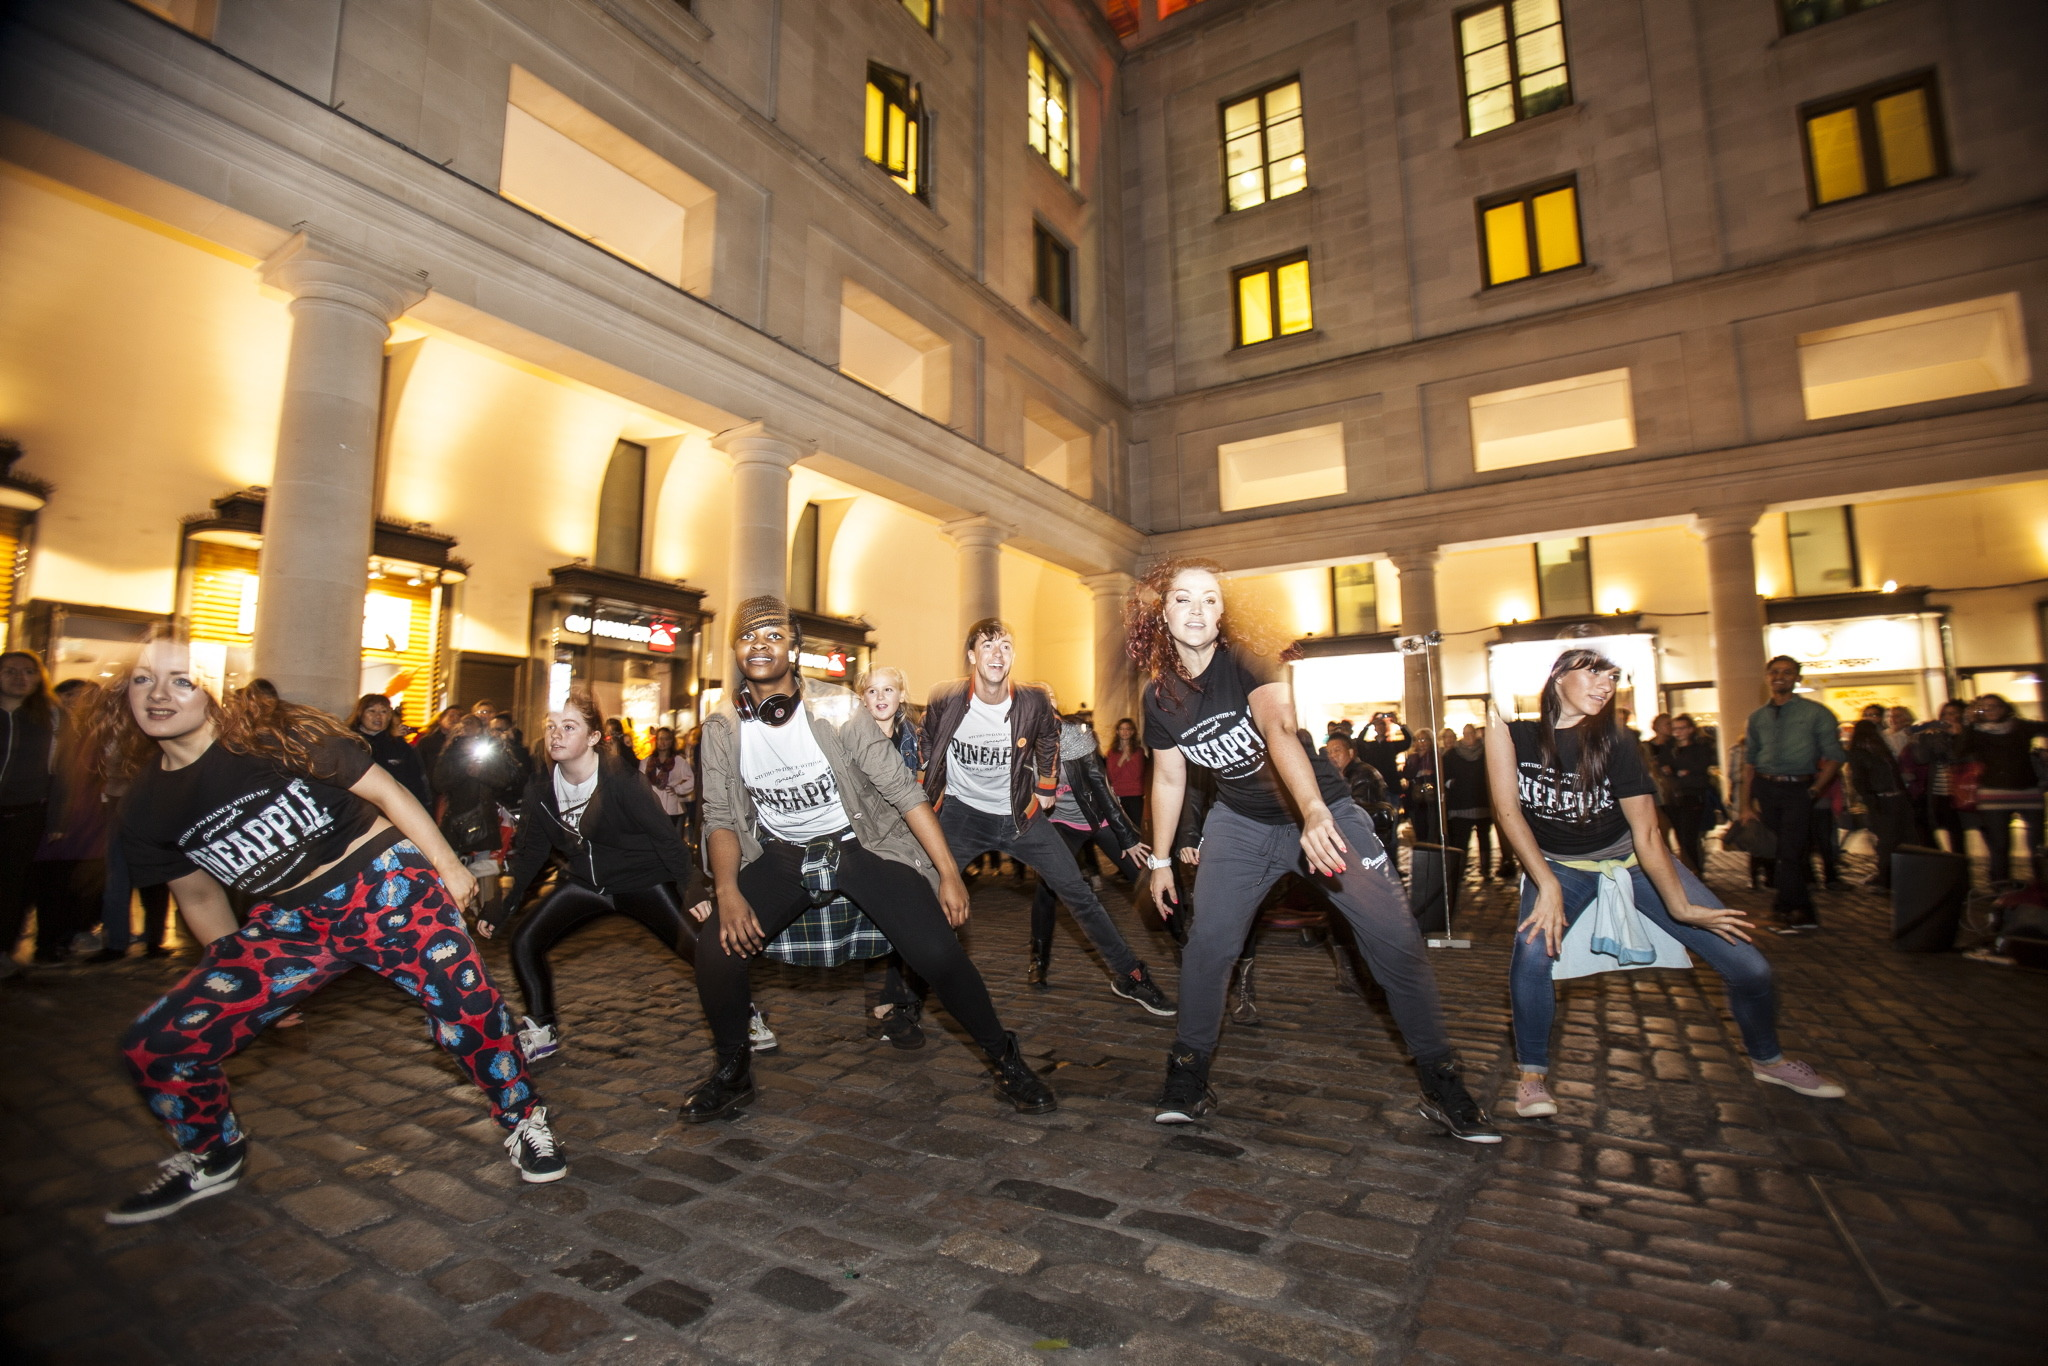 Flashmob in the piazza with Pineapple Dance Studios